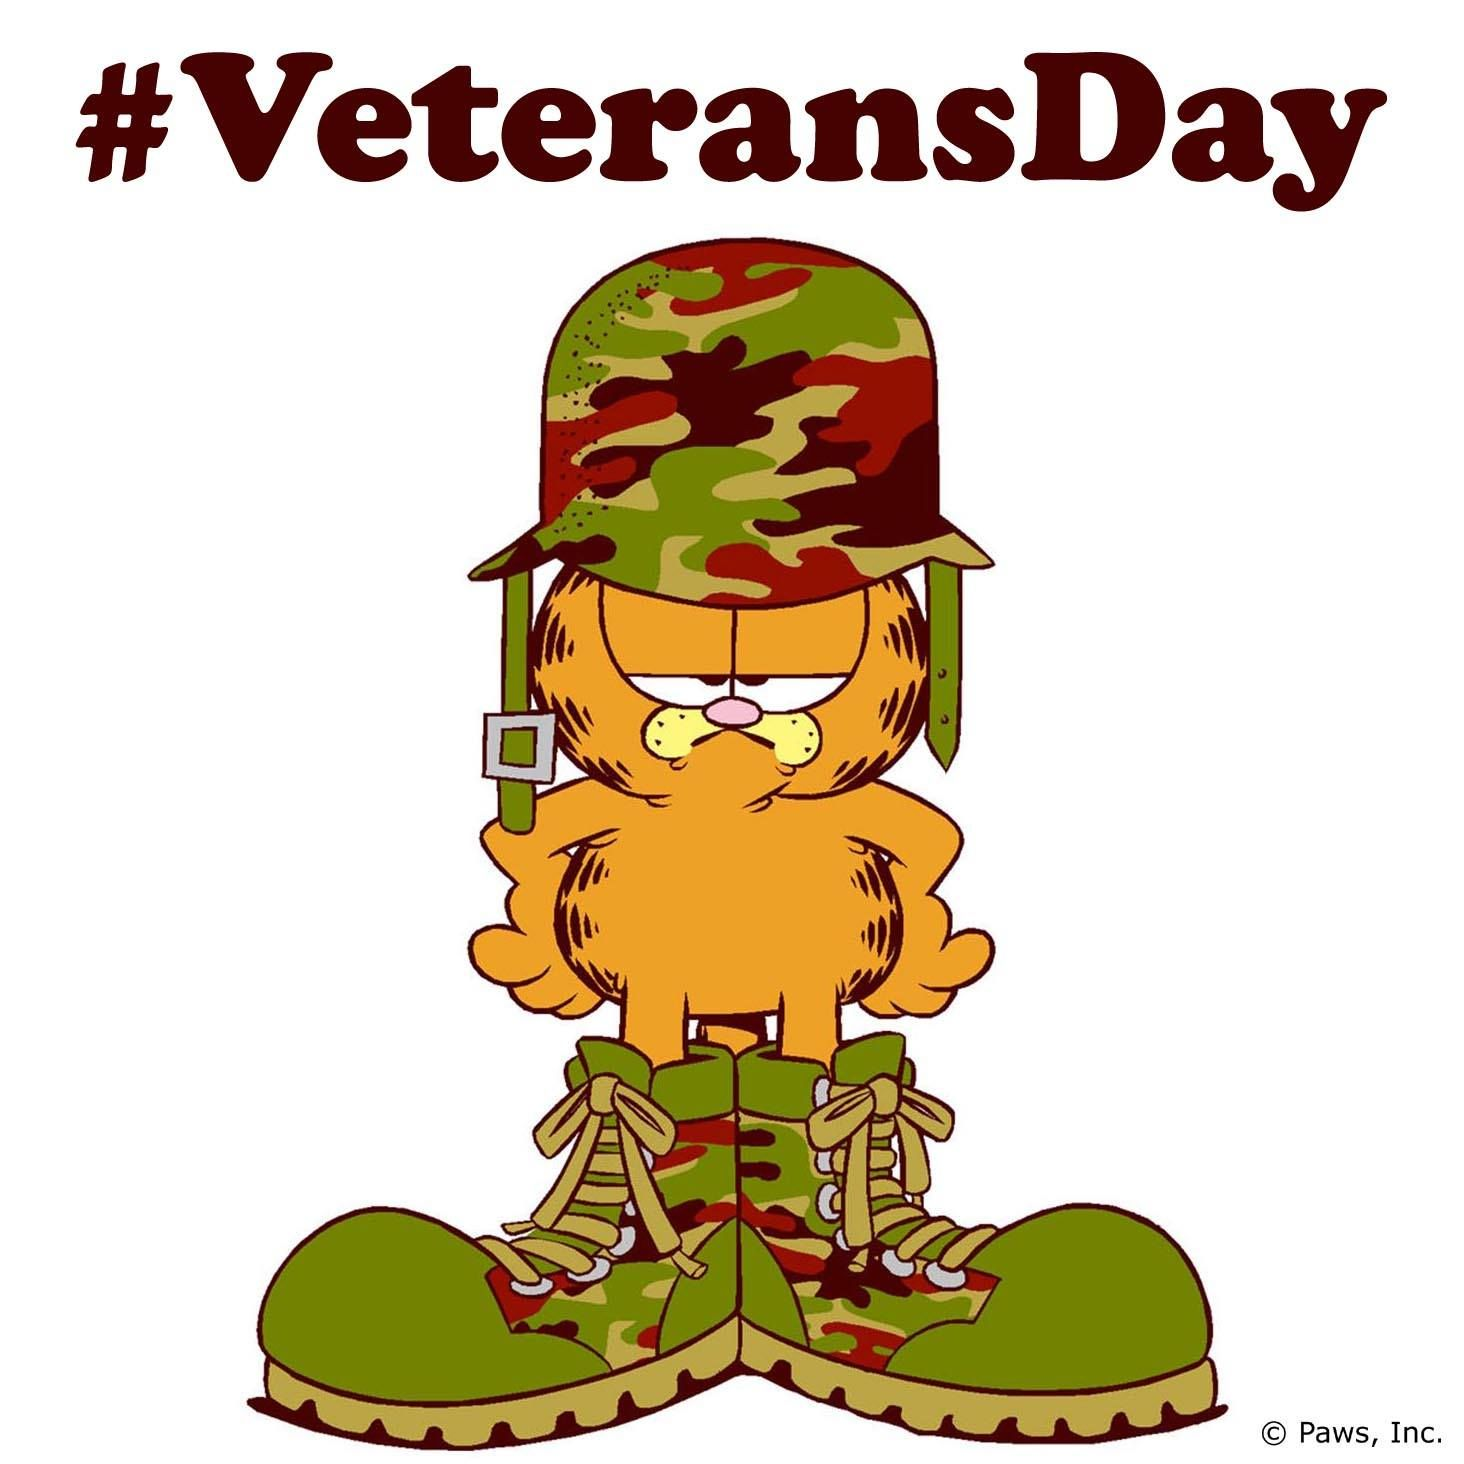 Veterans Day, Cartoon Characters, Cartoons, Cartoon Caracters, Animated Cartoons, Cartoon,